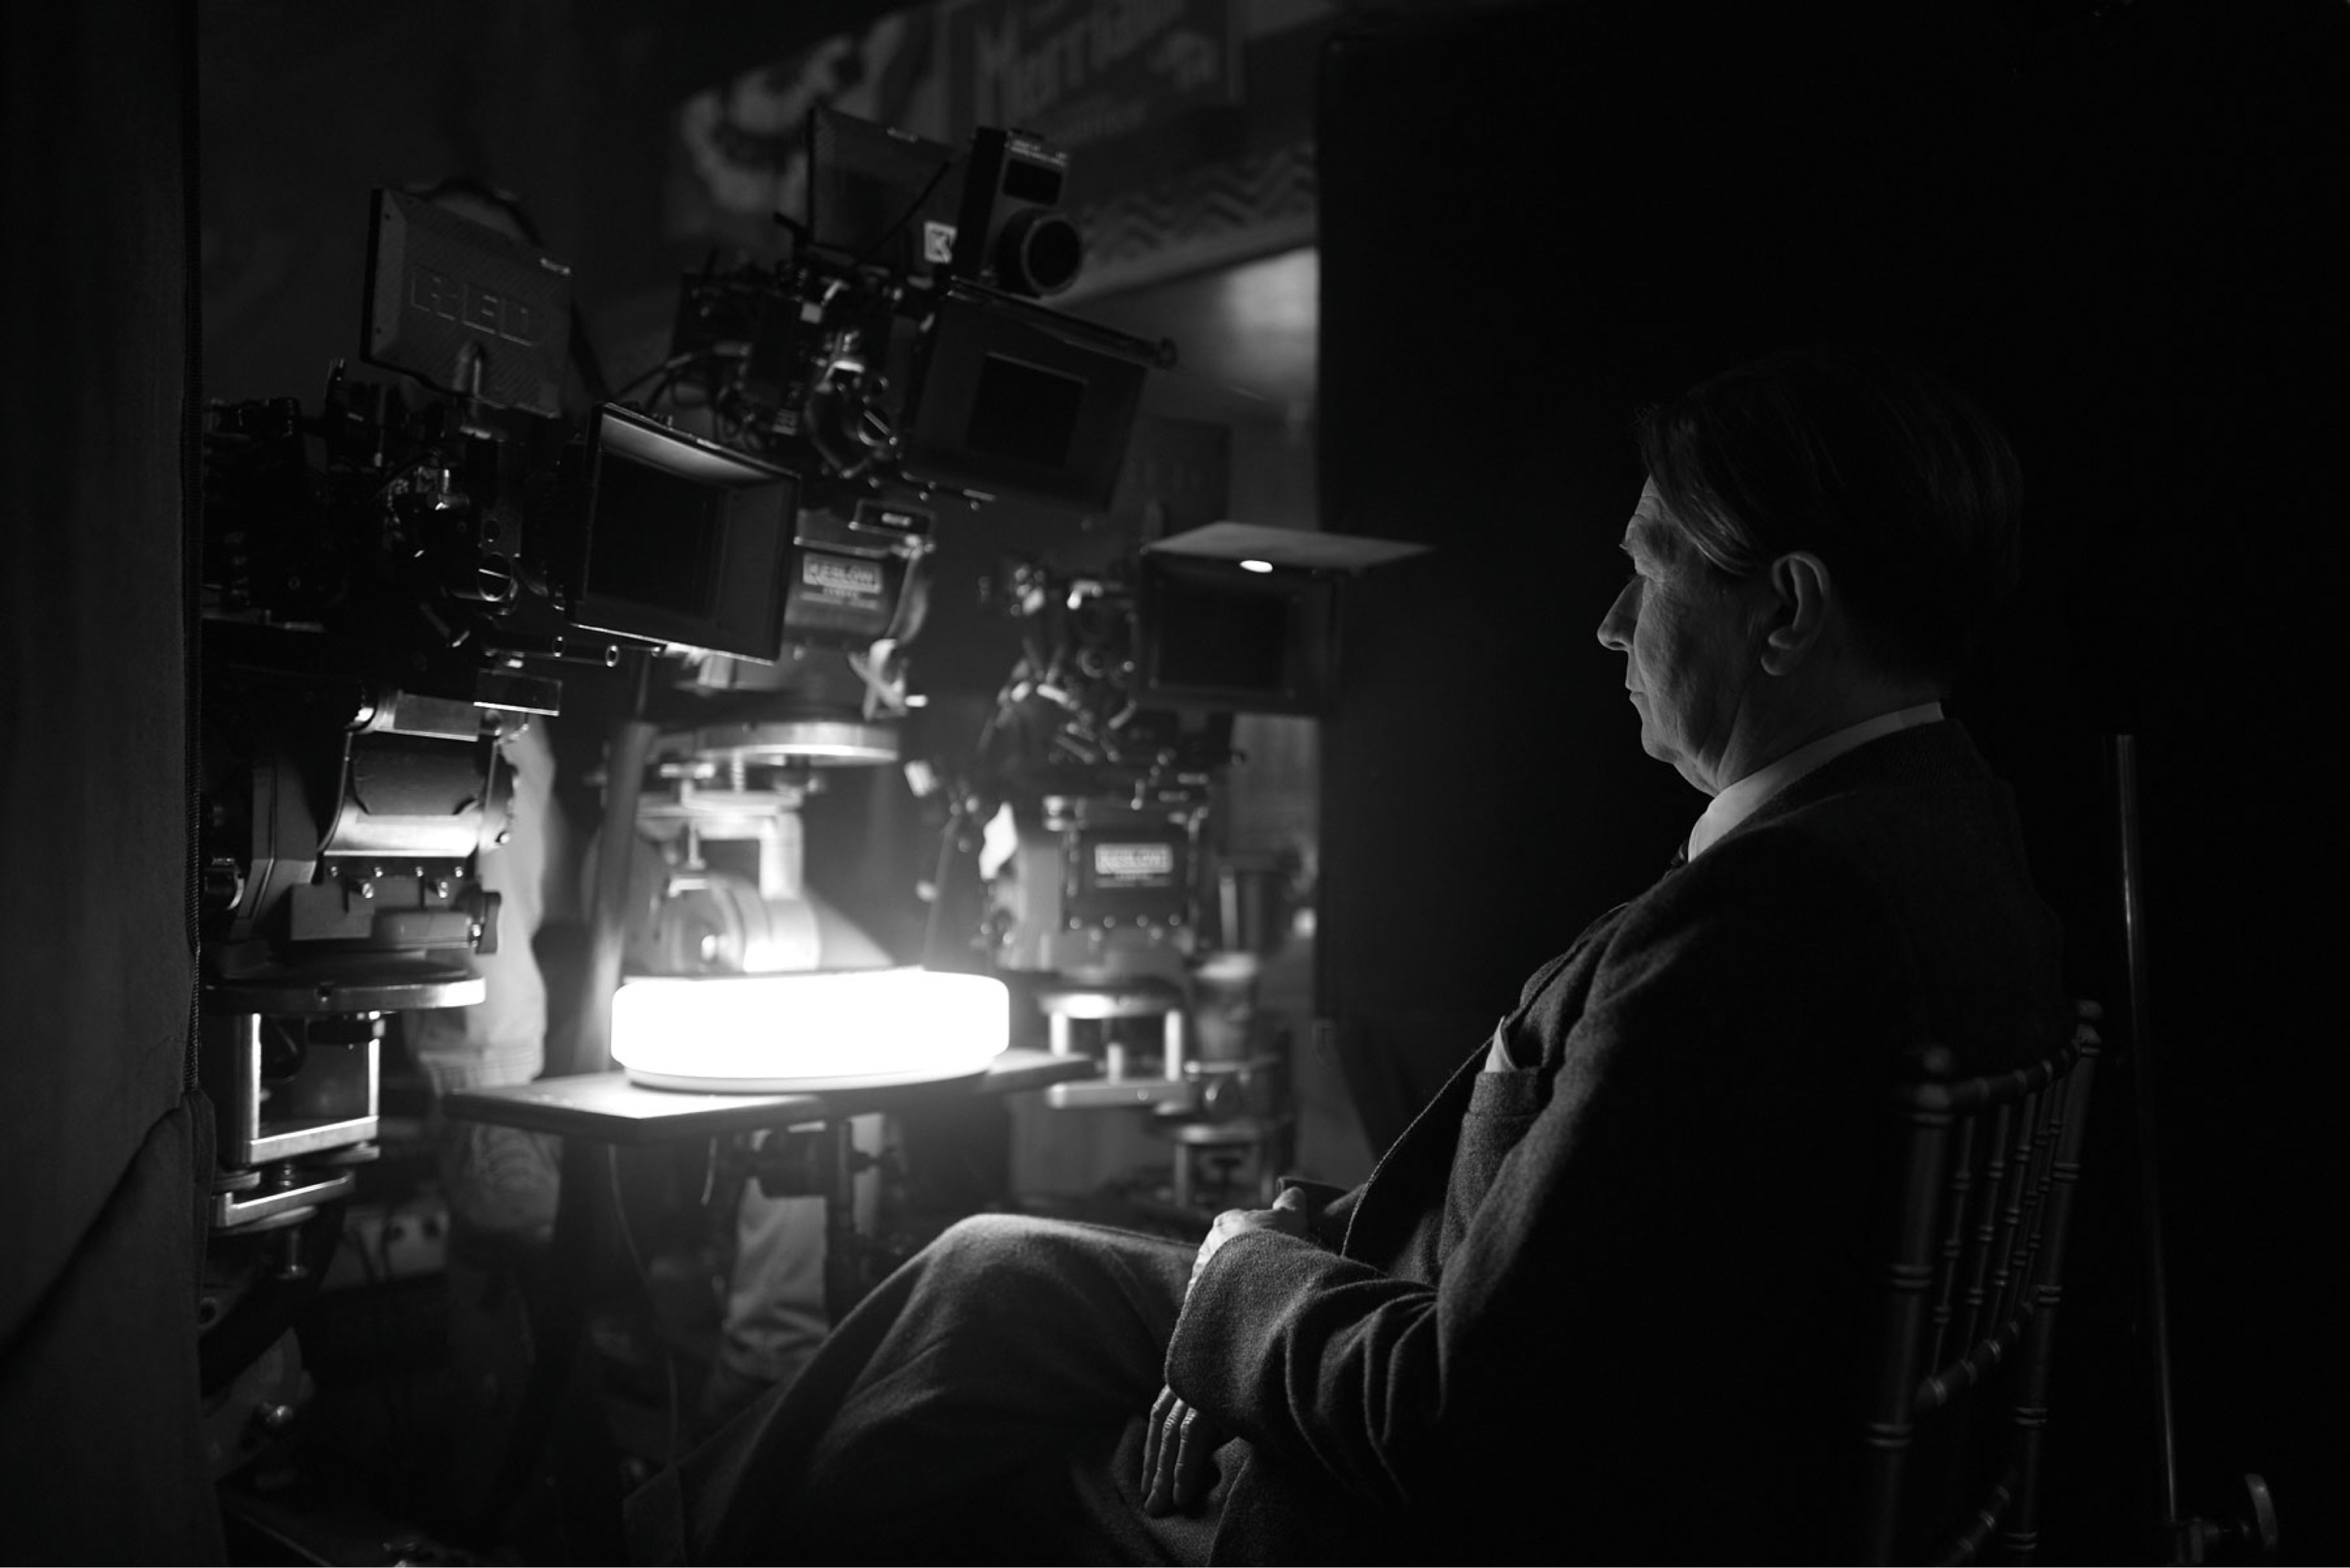 Gary Oldman in costume as Herman J. Mankiewicz sits behind a series of cameras on the set of Mank.